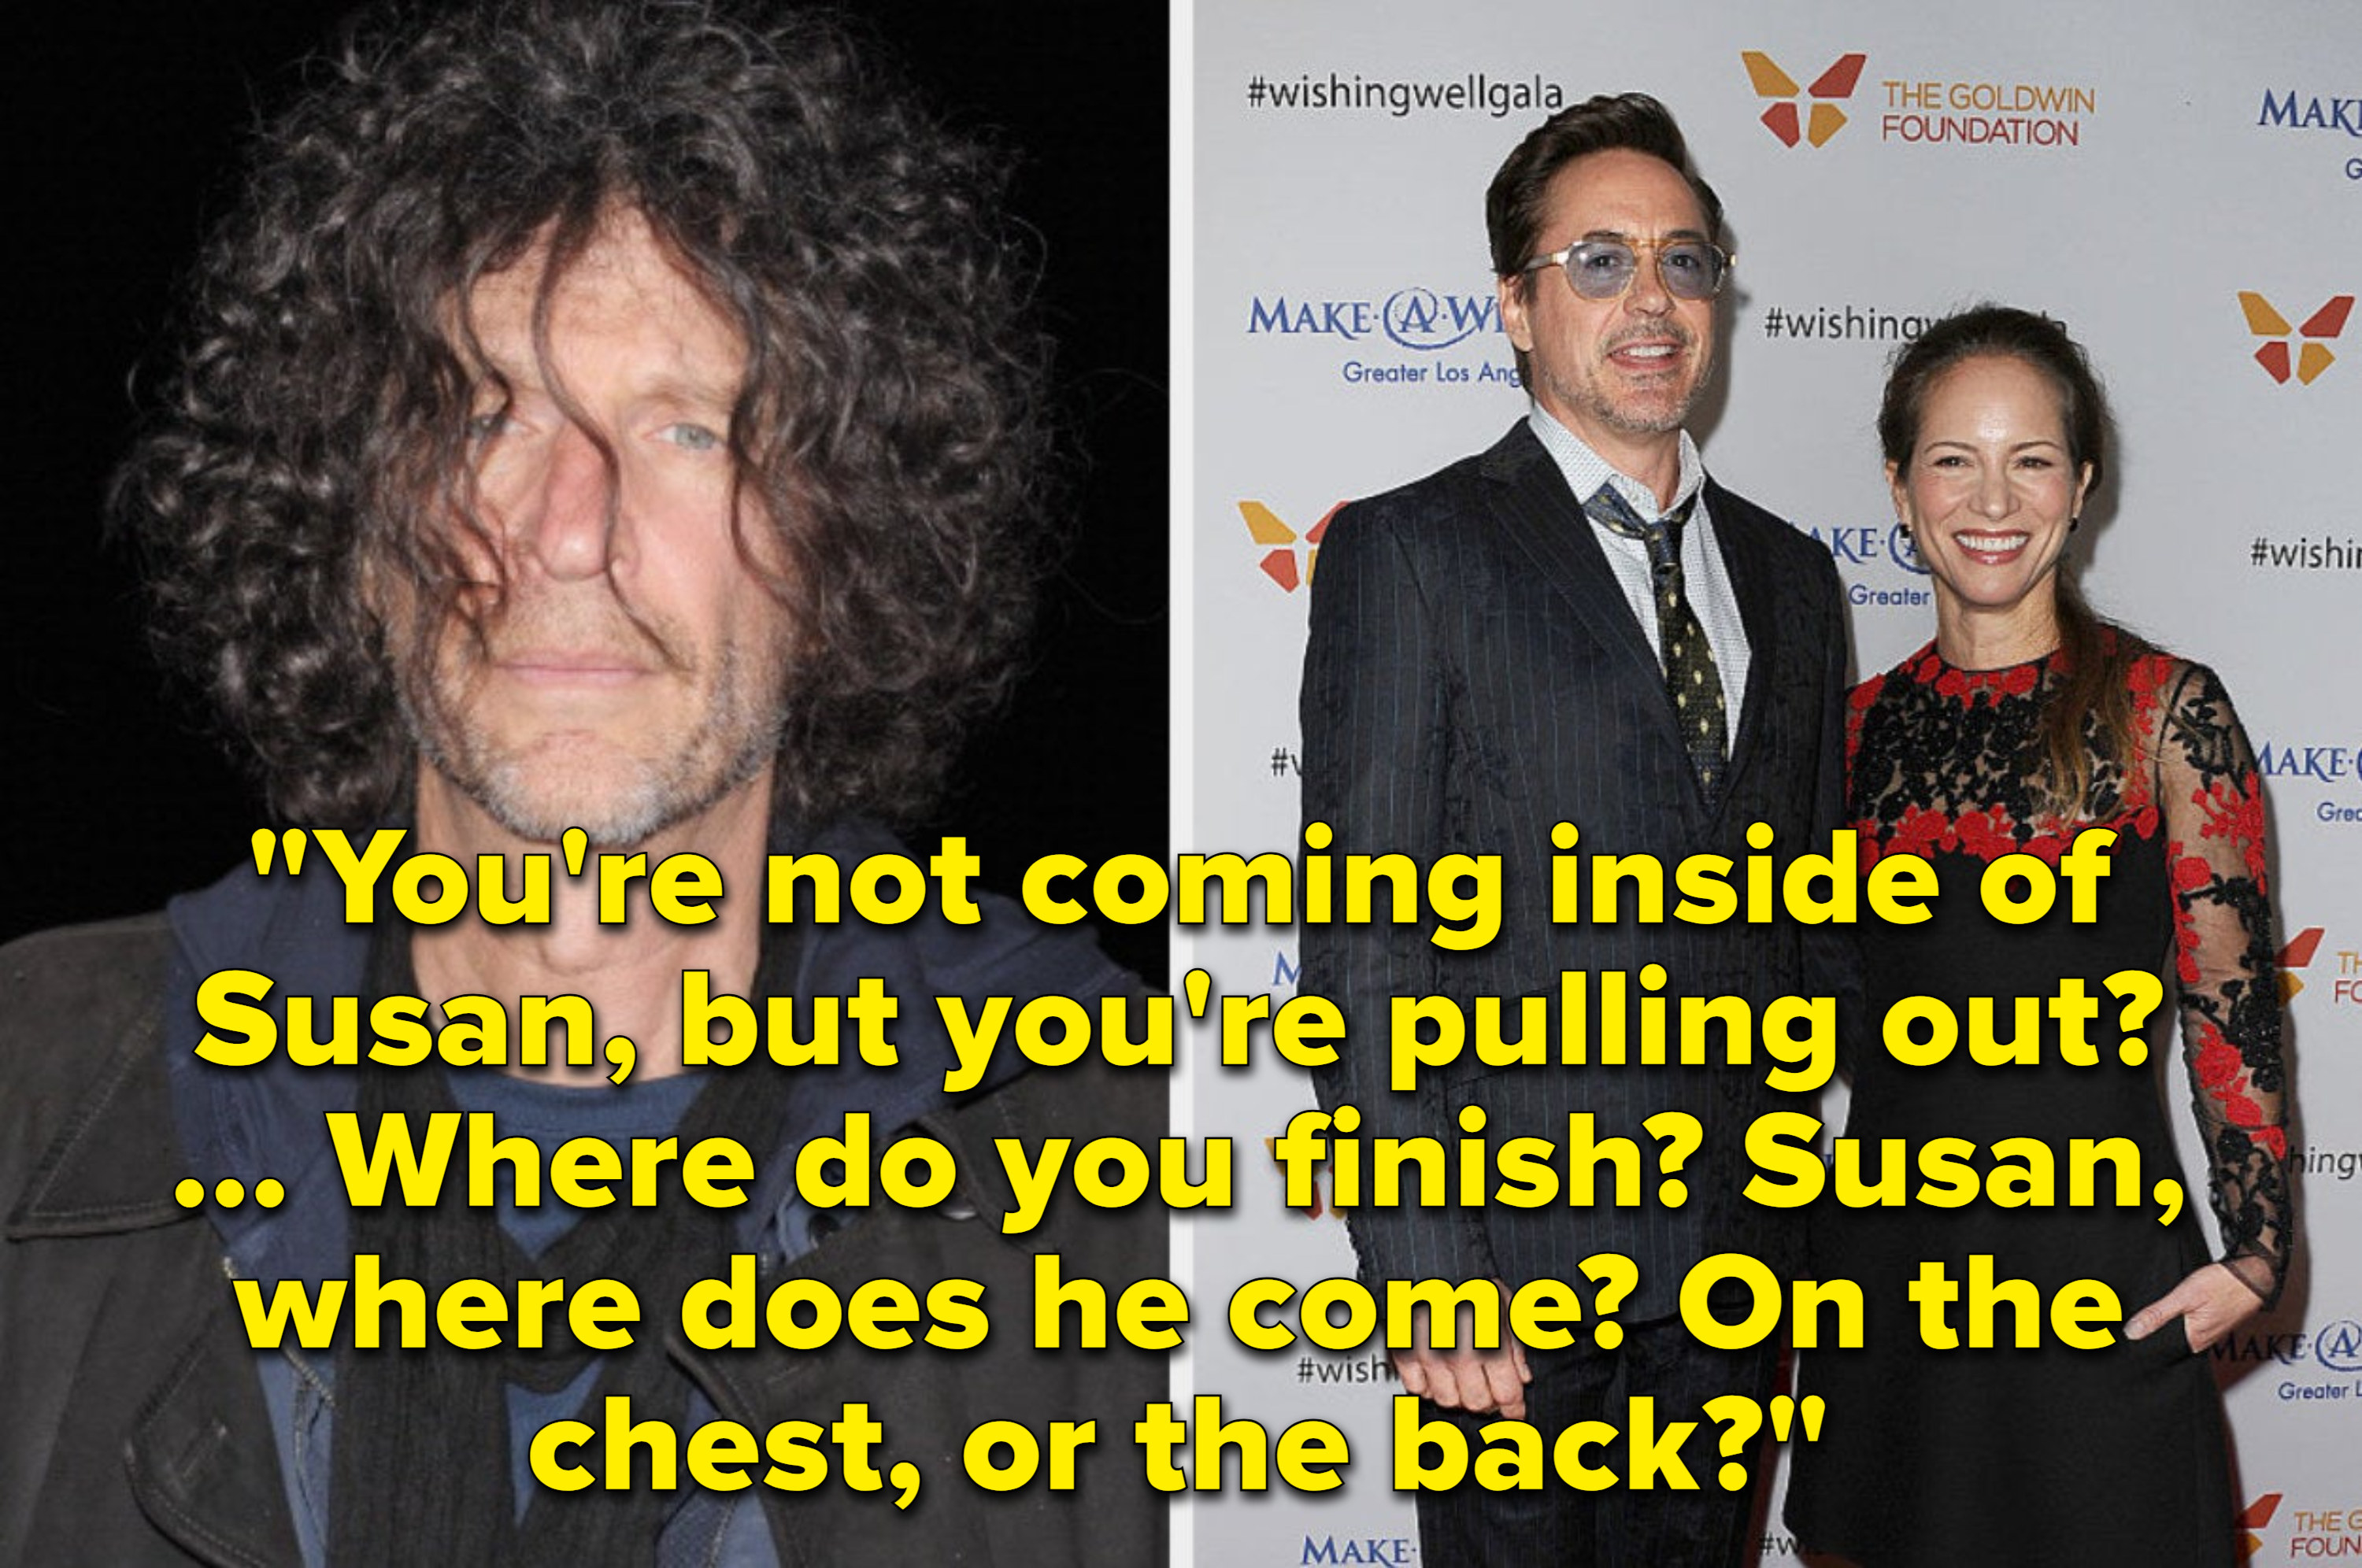 Howard's comment: You're not coming inside of Susan, but you're pulling out? ... Where do you finish? Susan, where does he come? On the chest, or the back